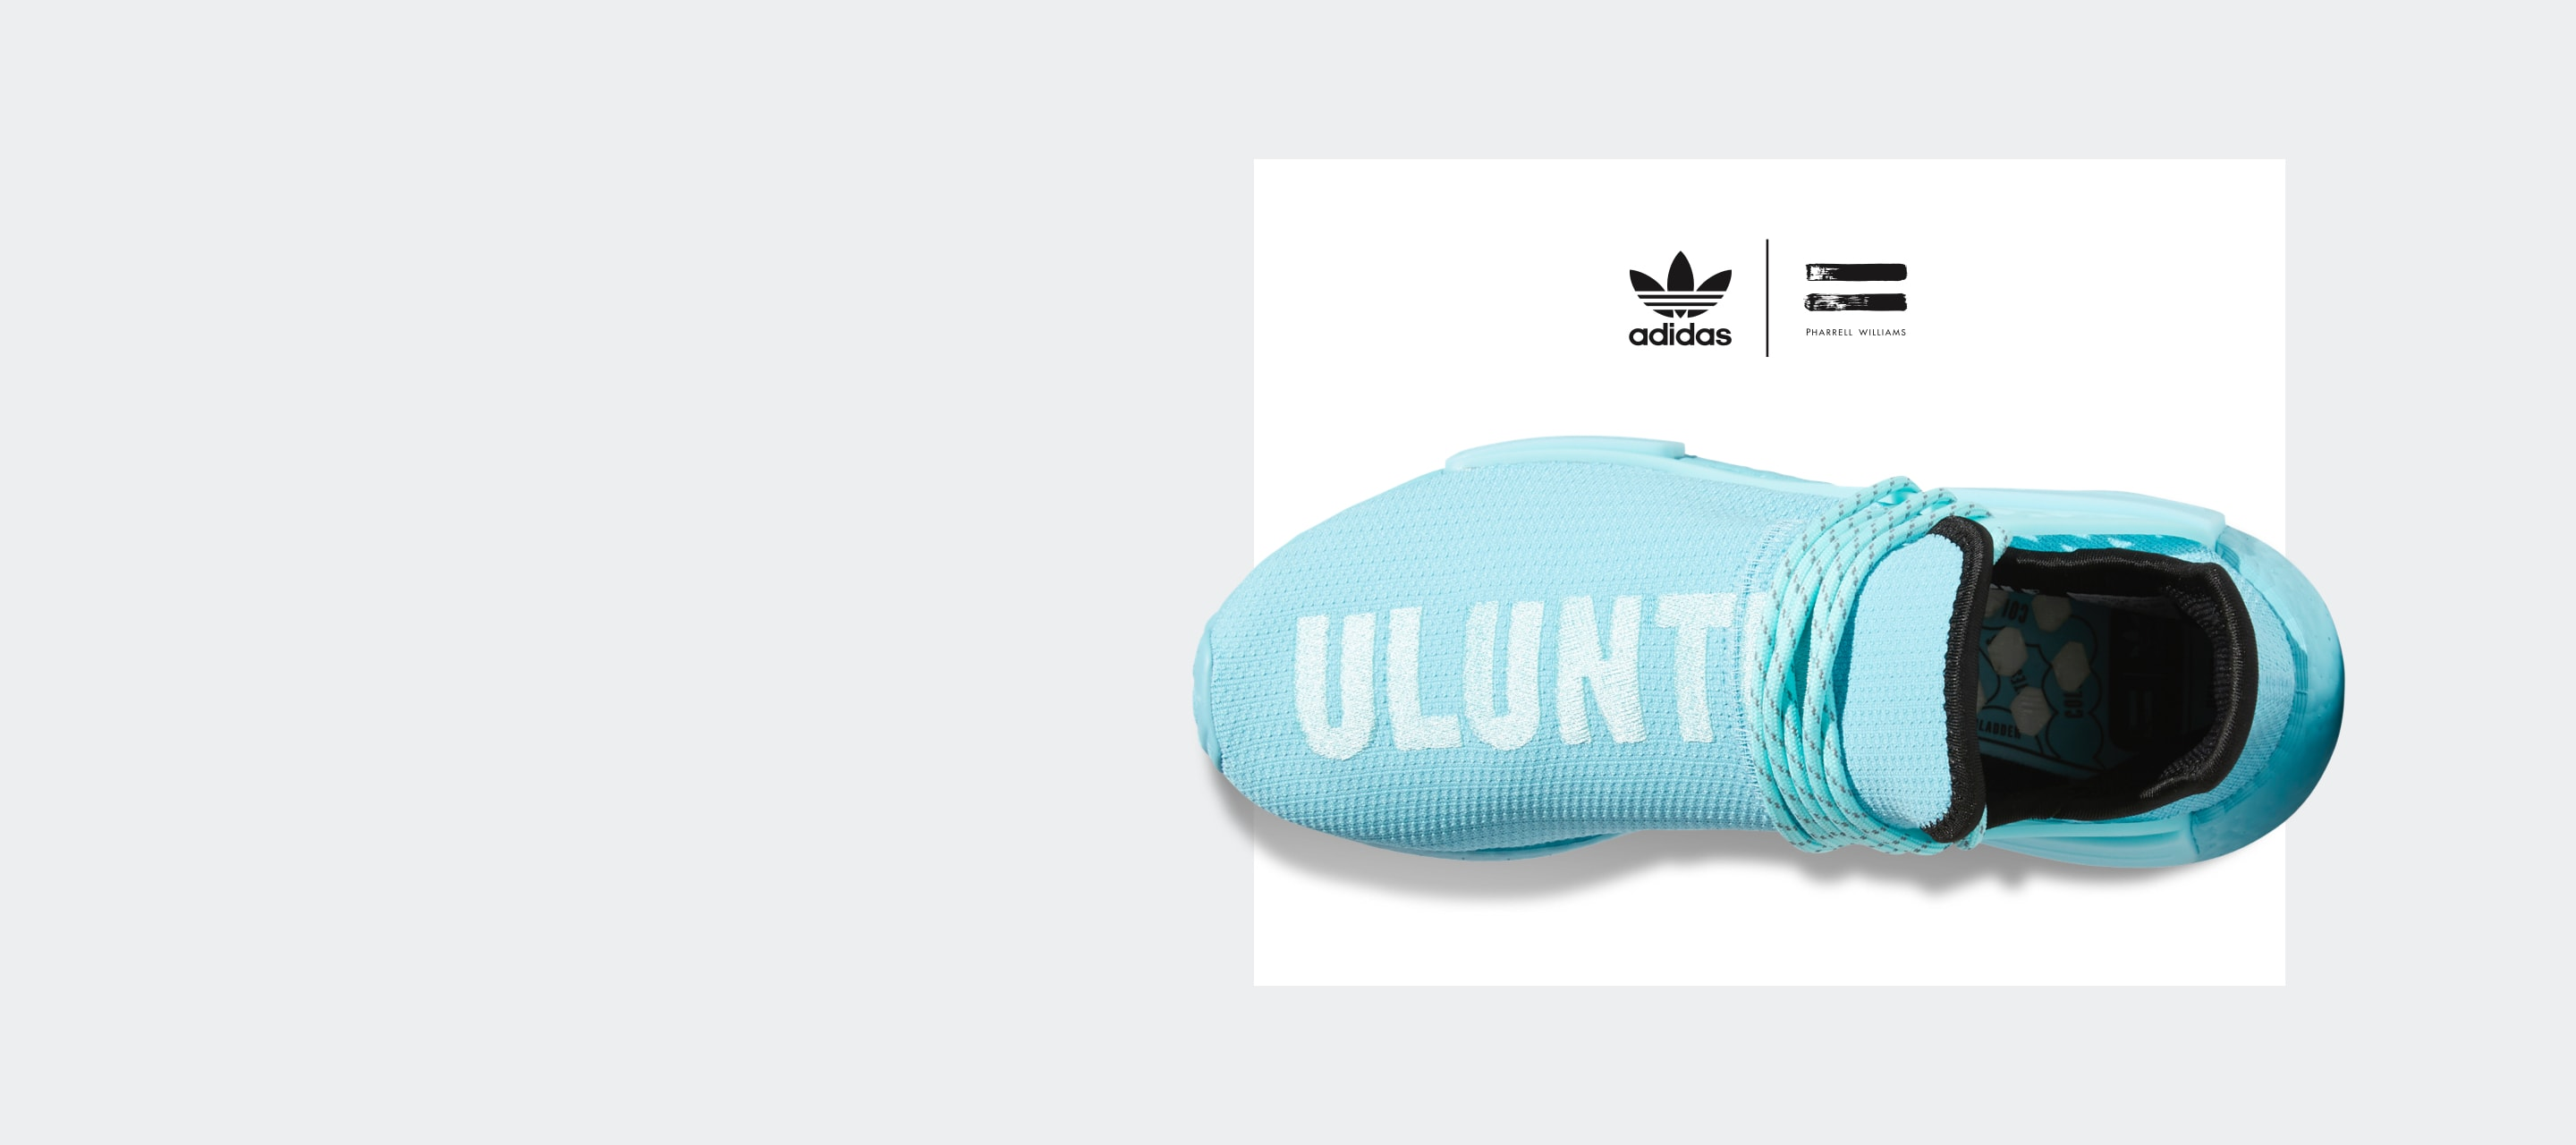 """An overhead shot of a bright blue HU NMD shoe, highlighting the white embroidered """"ULUNTU"""" block lettering on the Primeknit upper."""